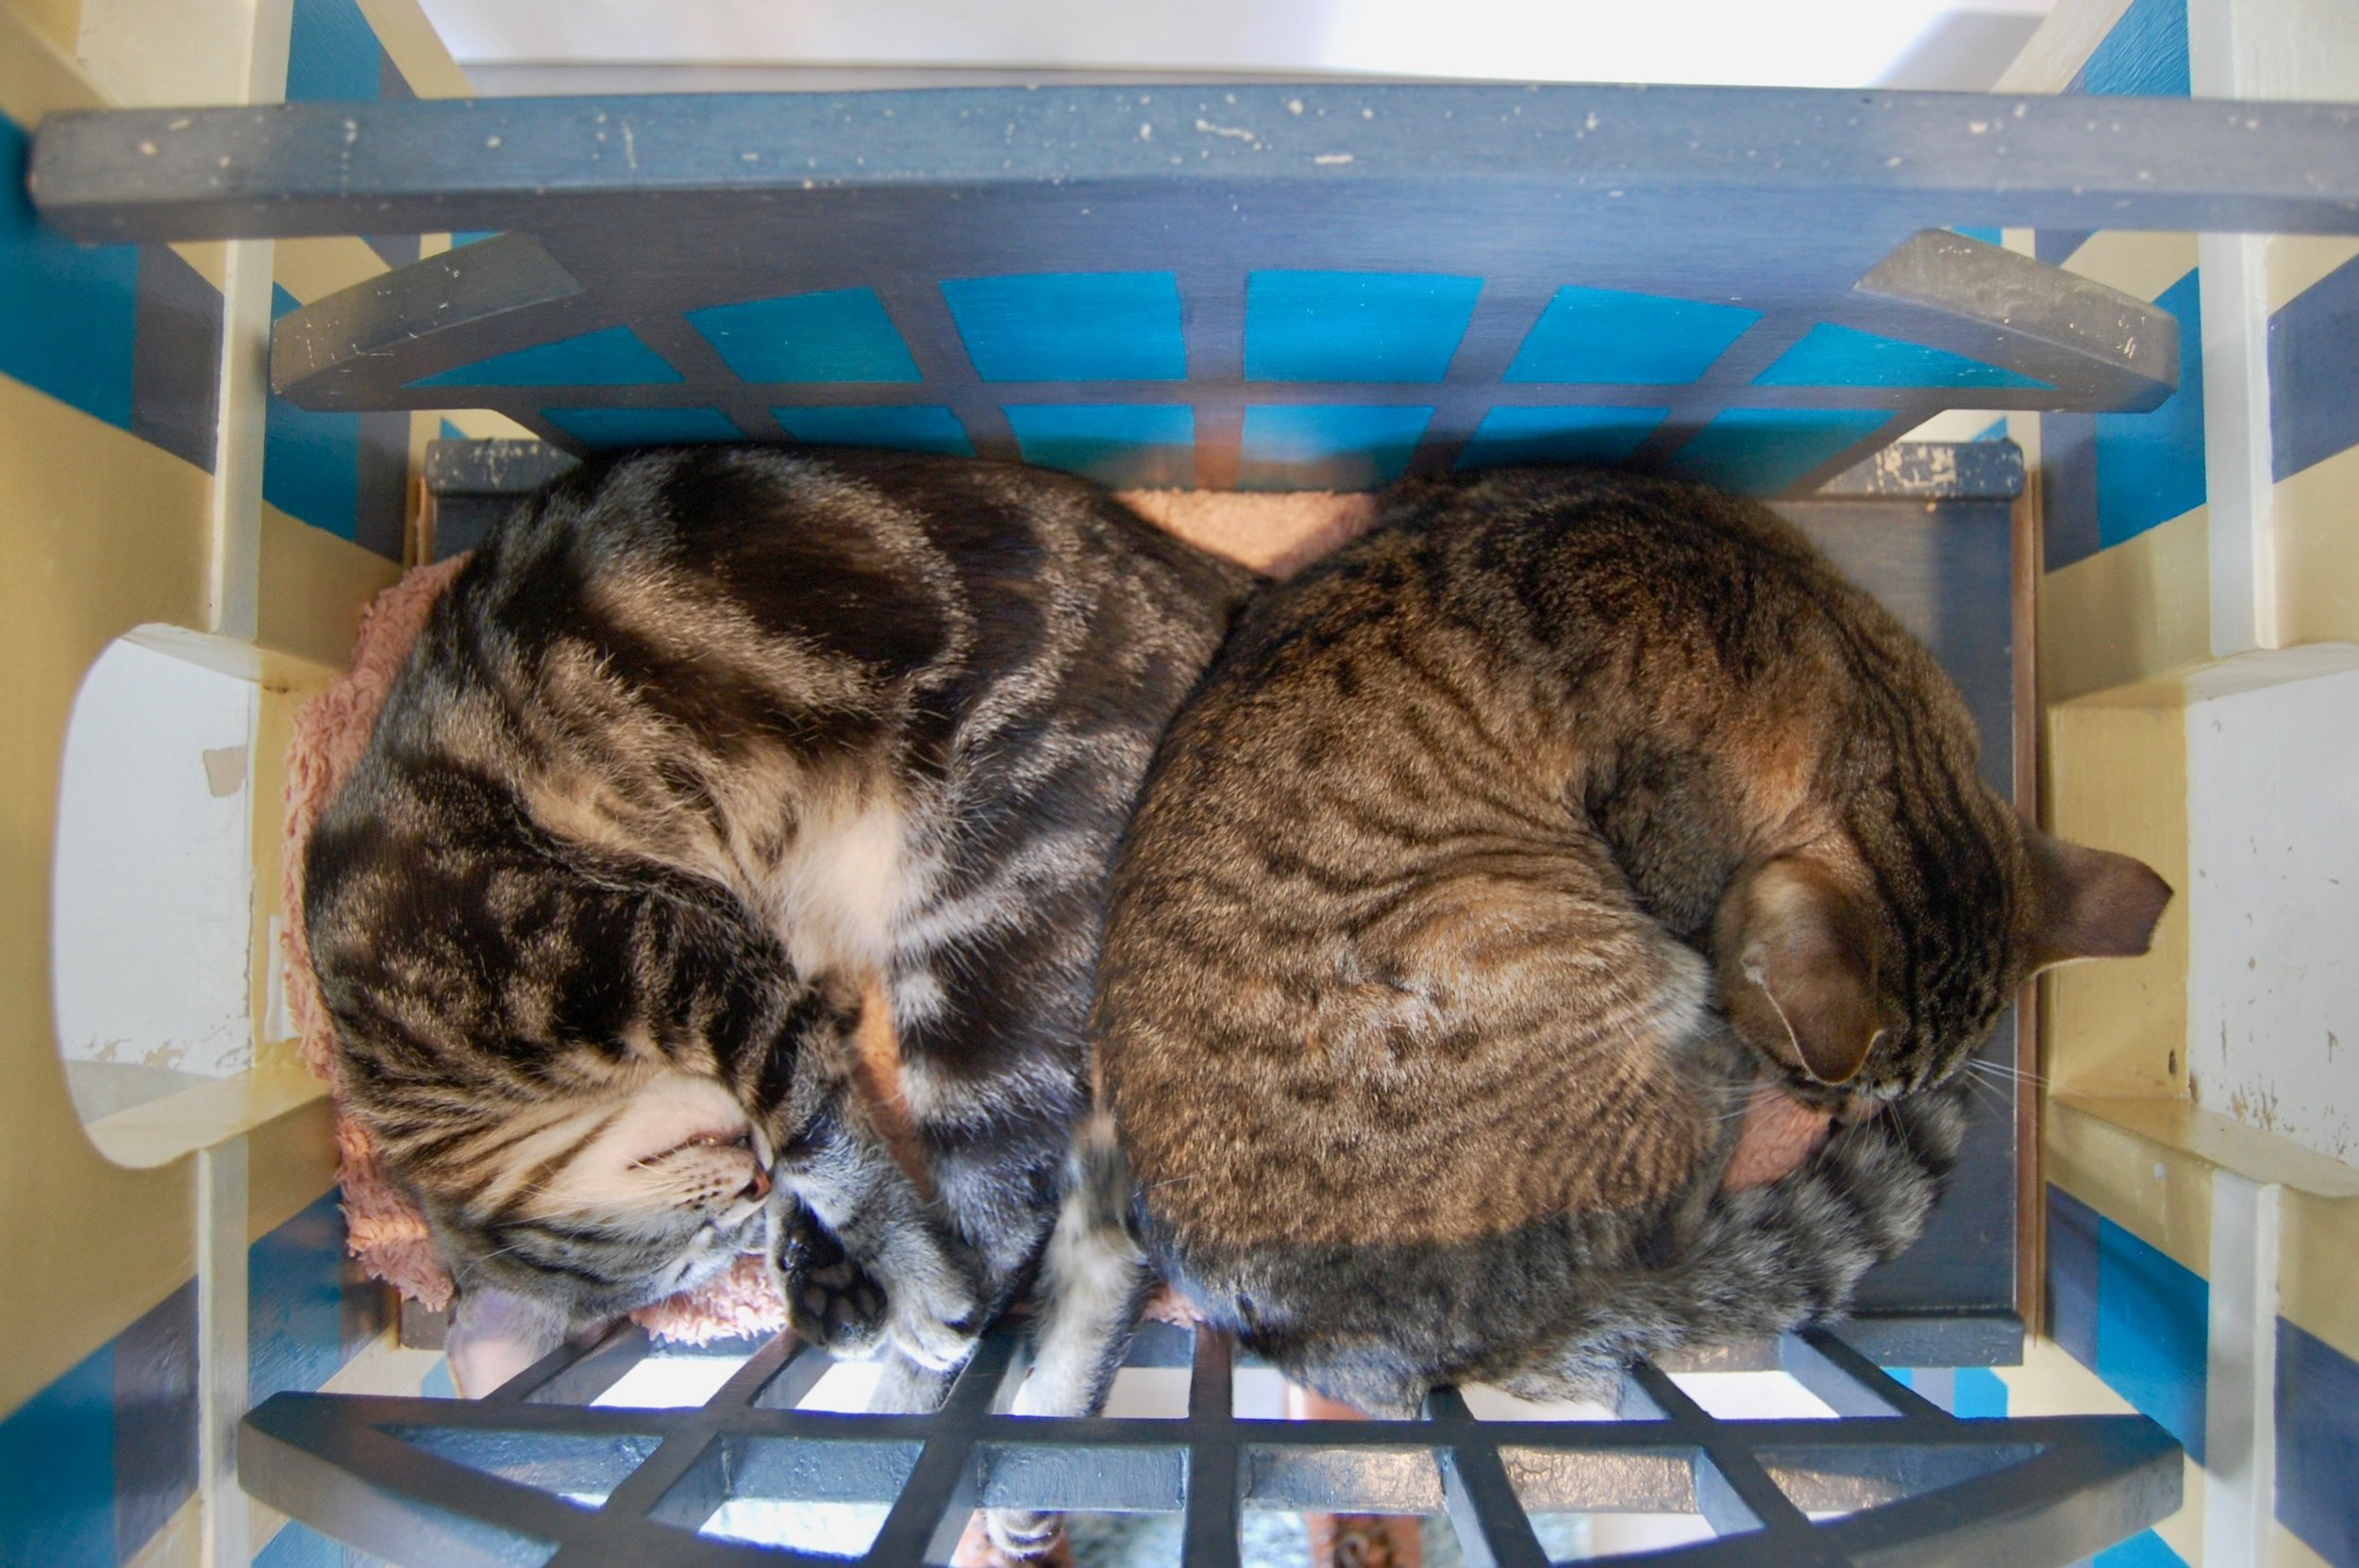 Merlin, right, cuddles up with another member of the Forgotten Kitten Project. Photo by Cathy Niland